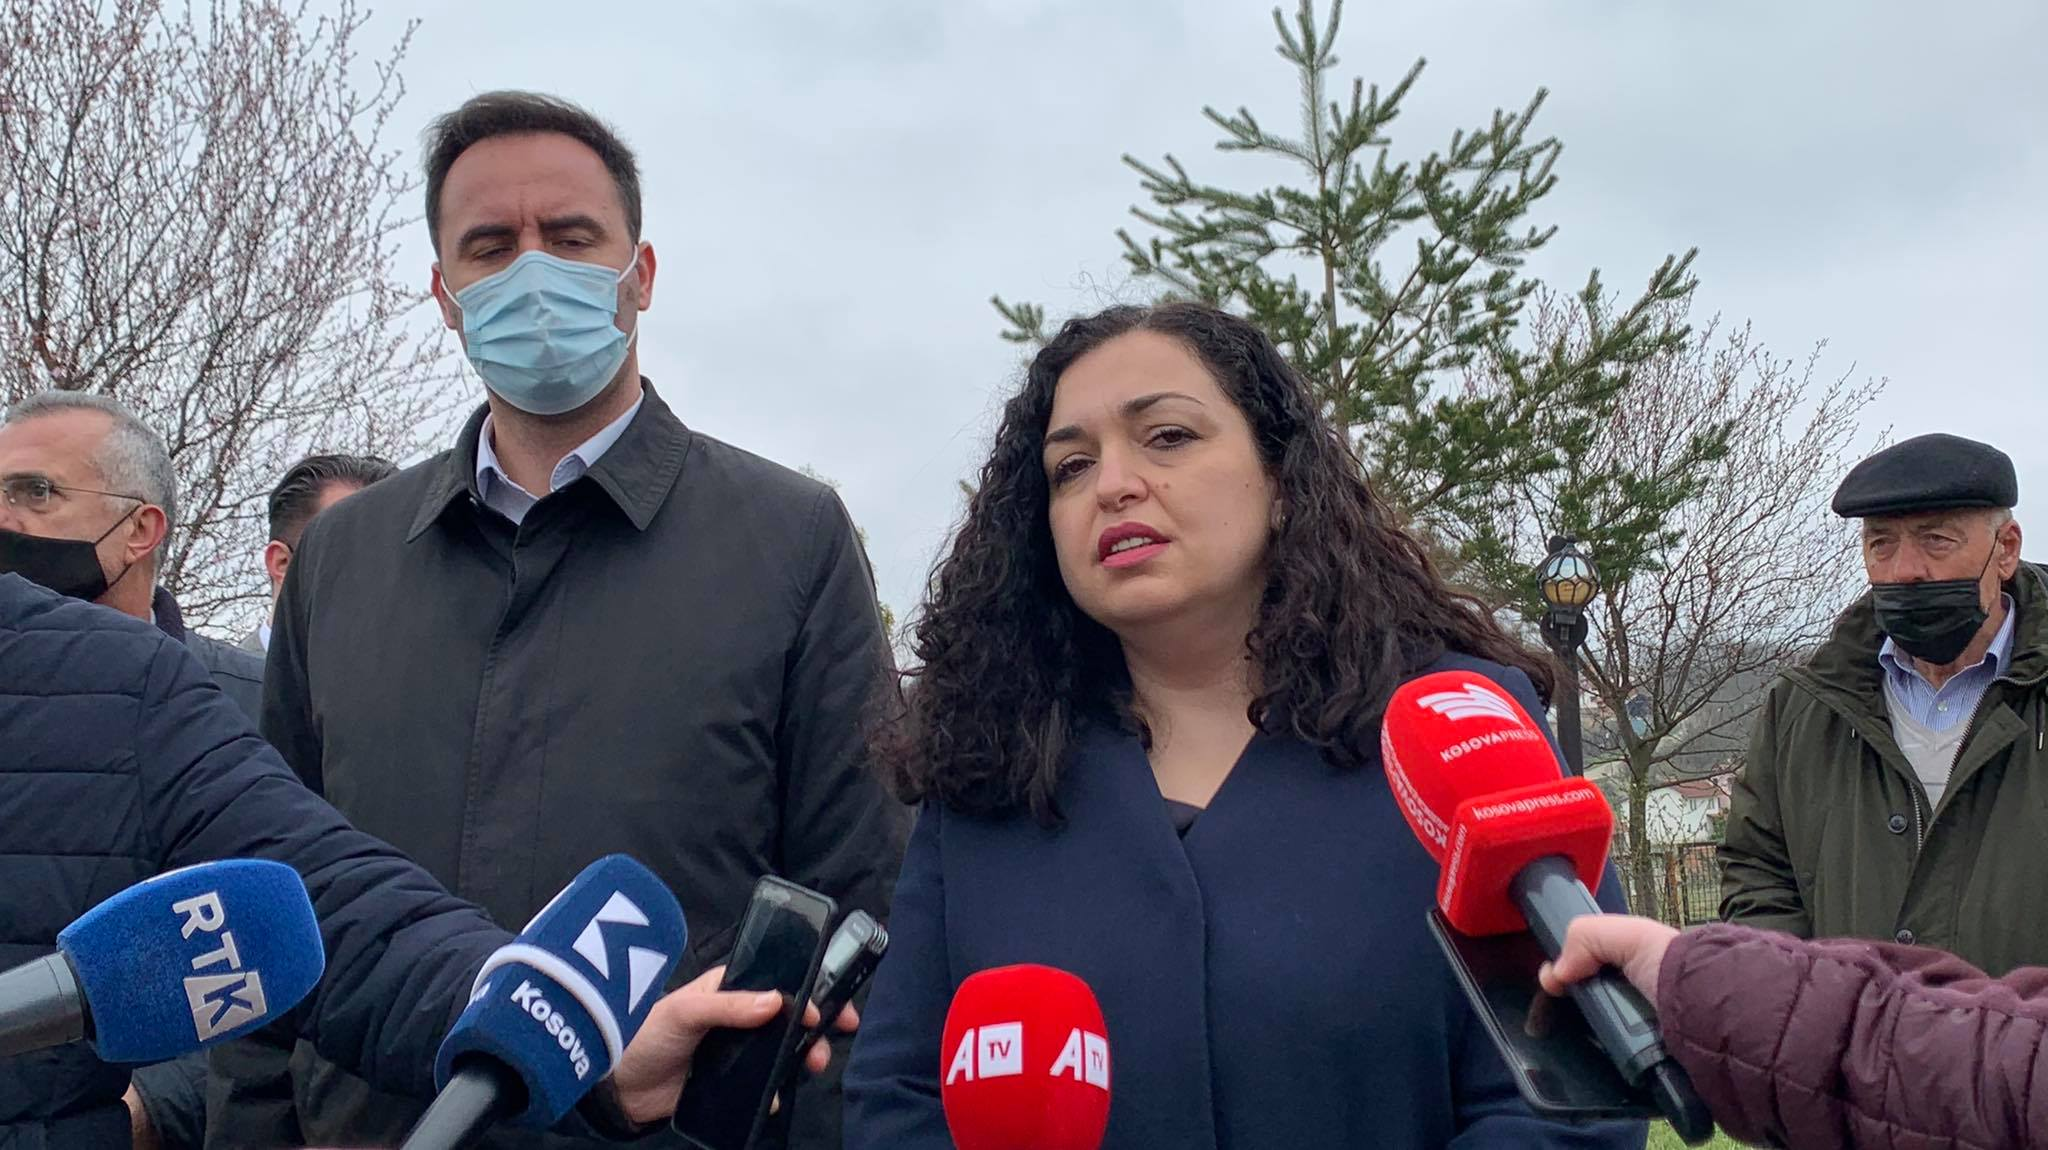 Osmani and Konjufca paid homage in Çikatova, they demand justice for the fallen